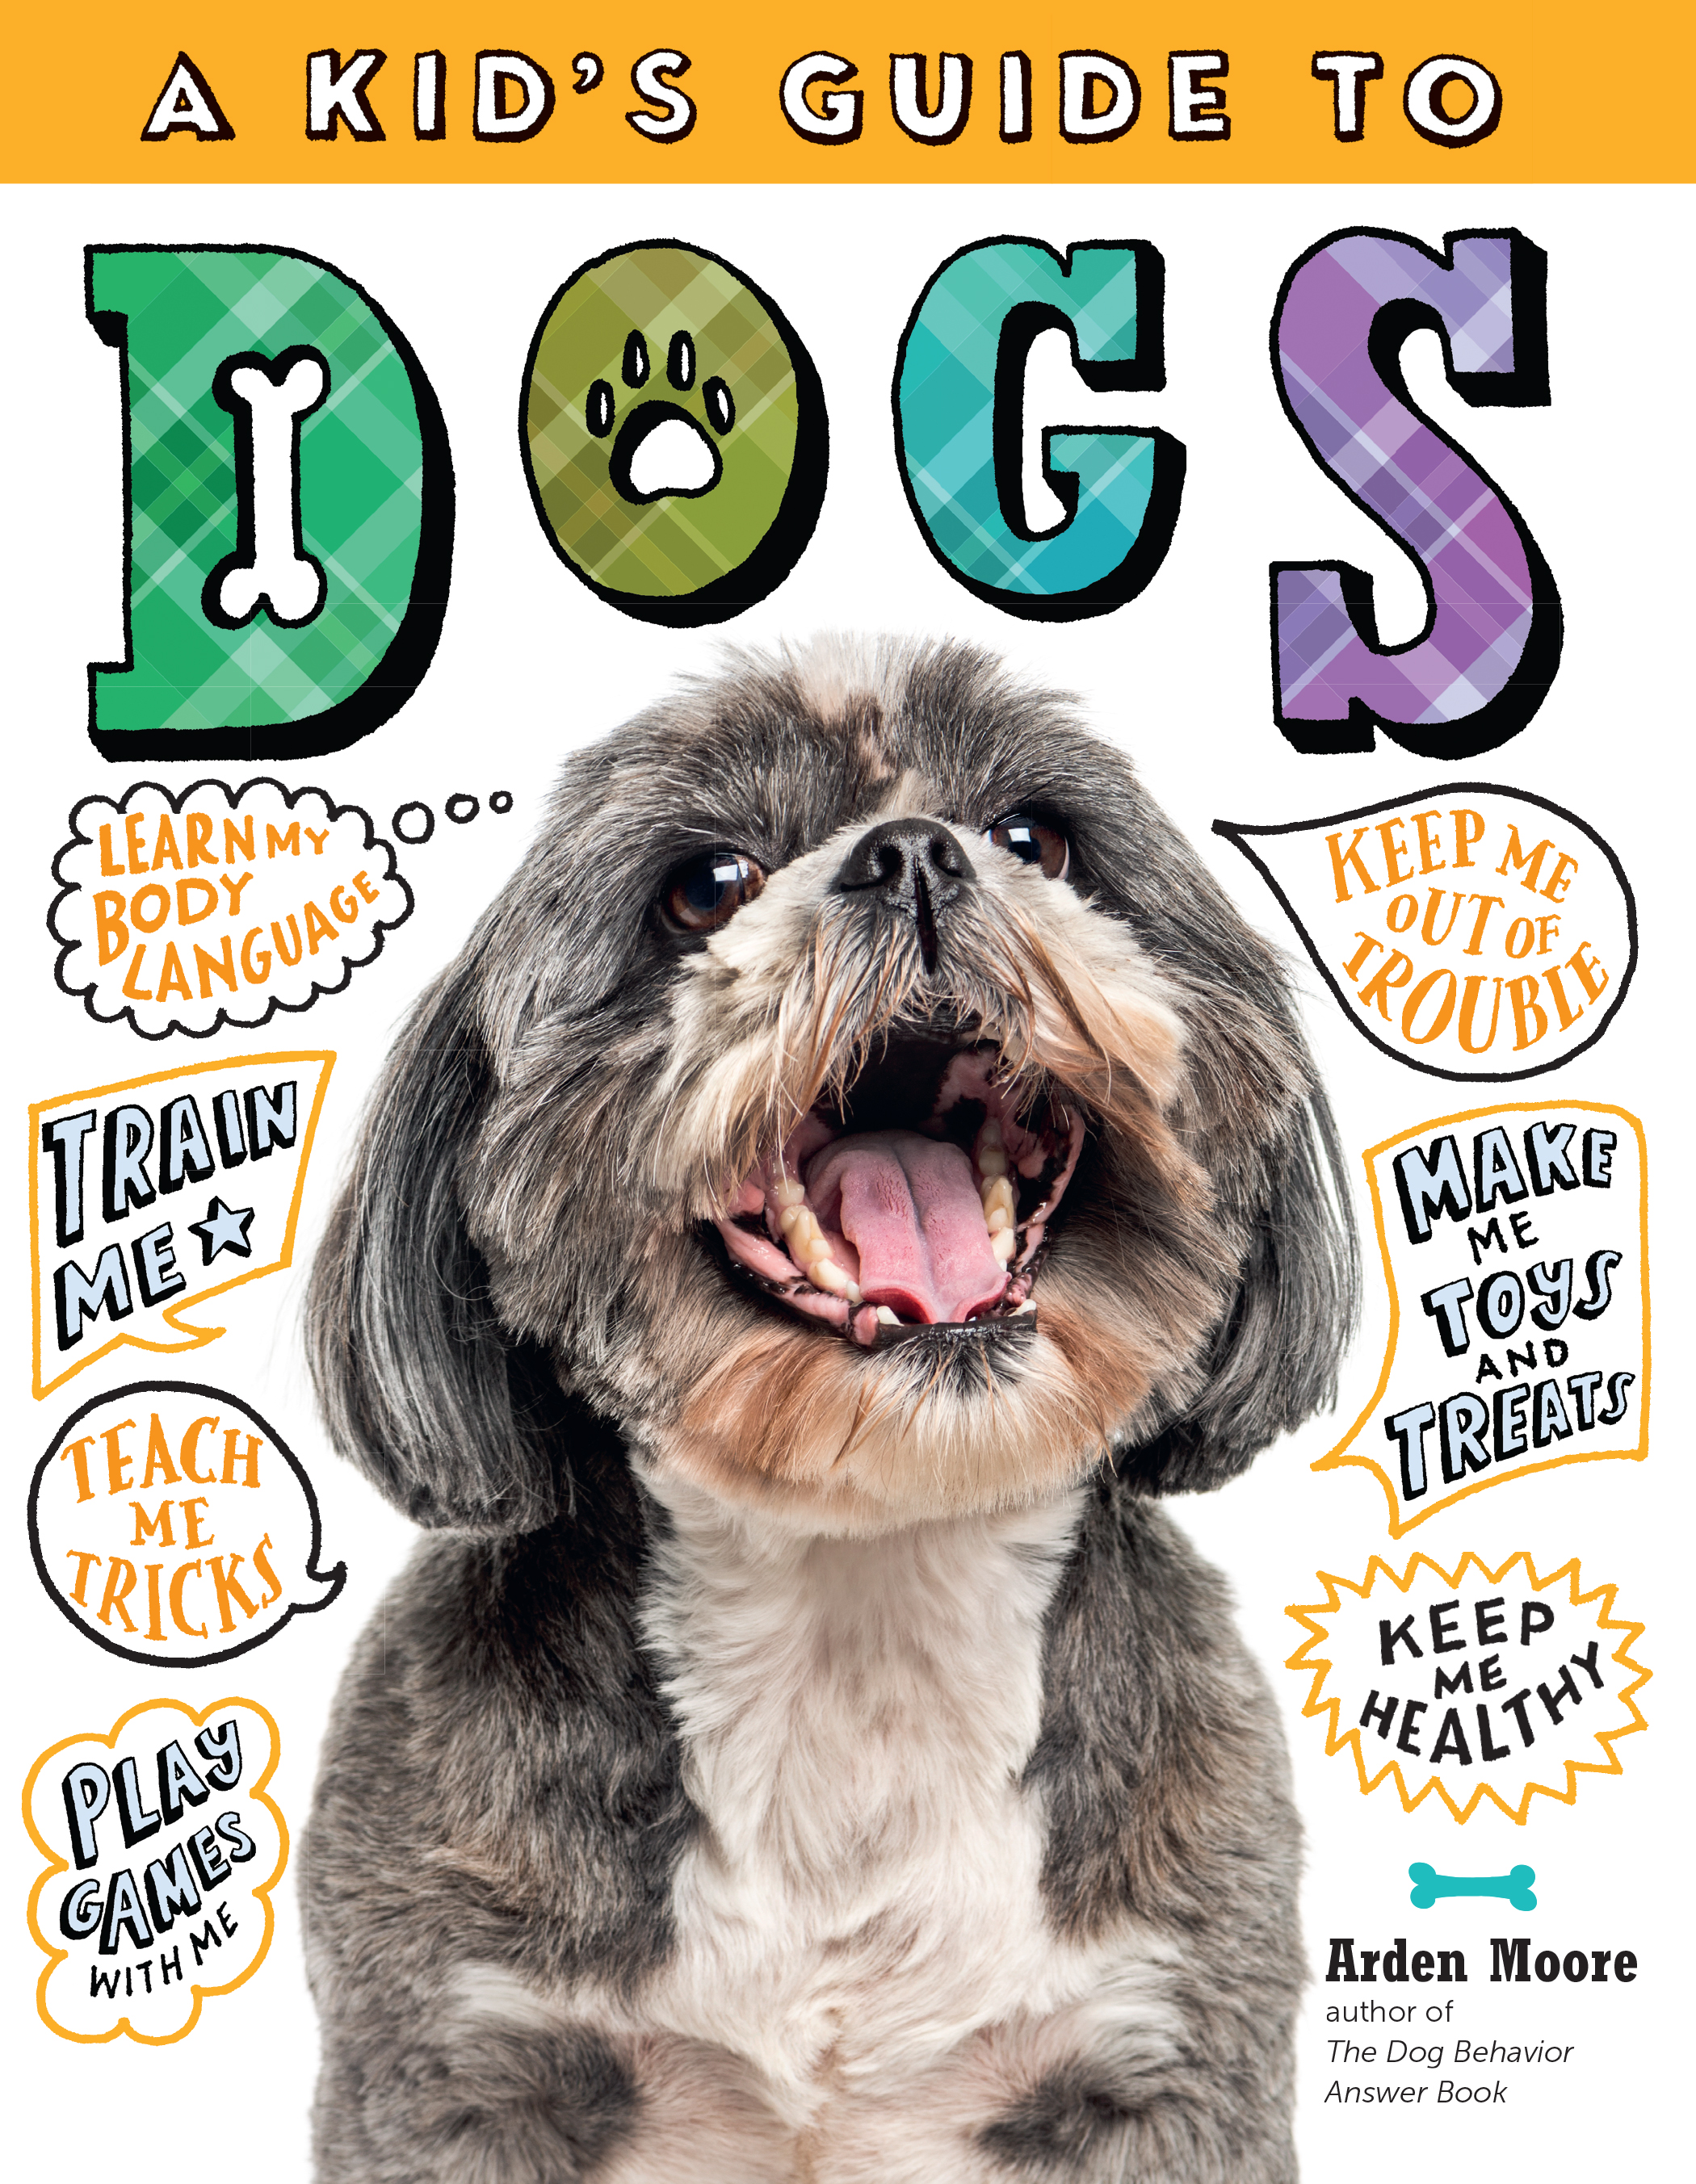 A Kid's Guide to Dogs - Storey Publishing